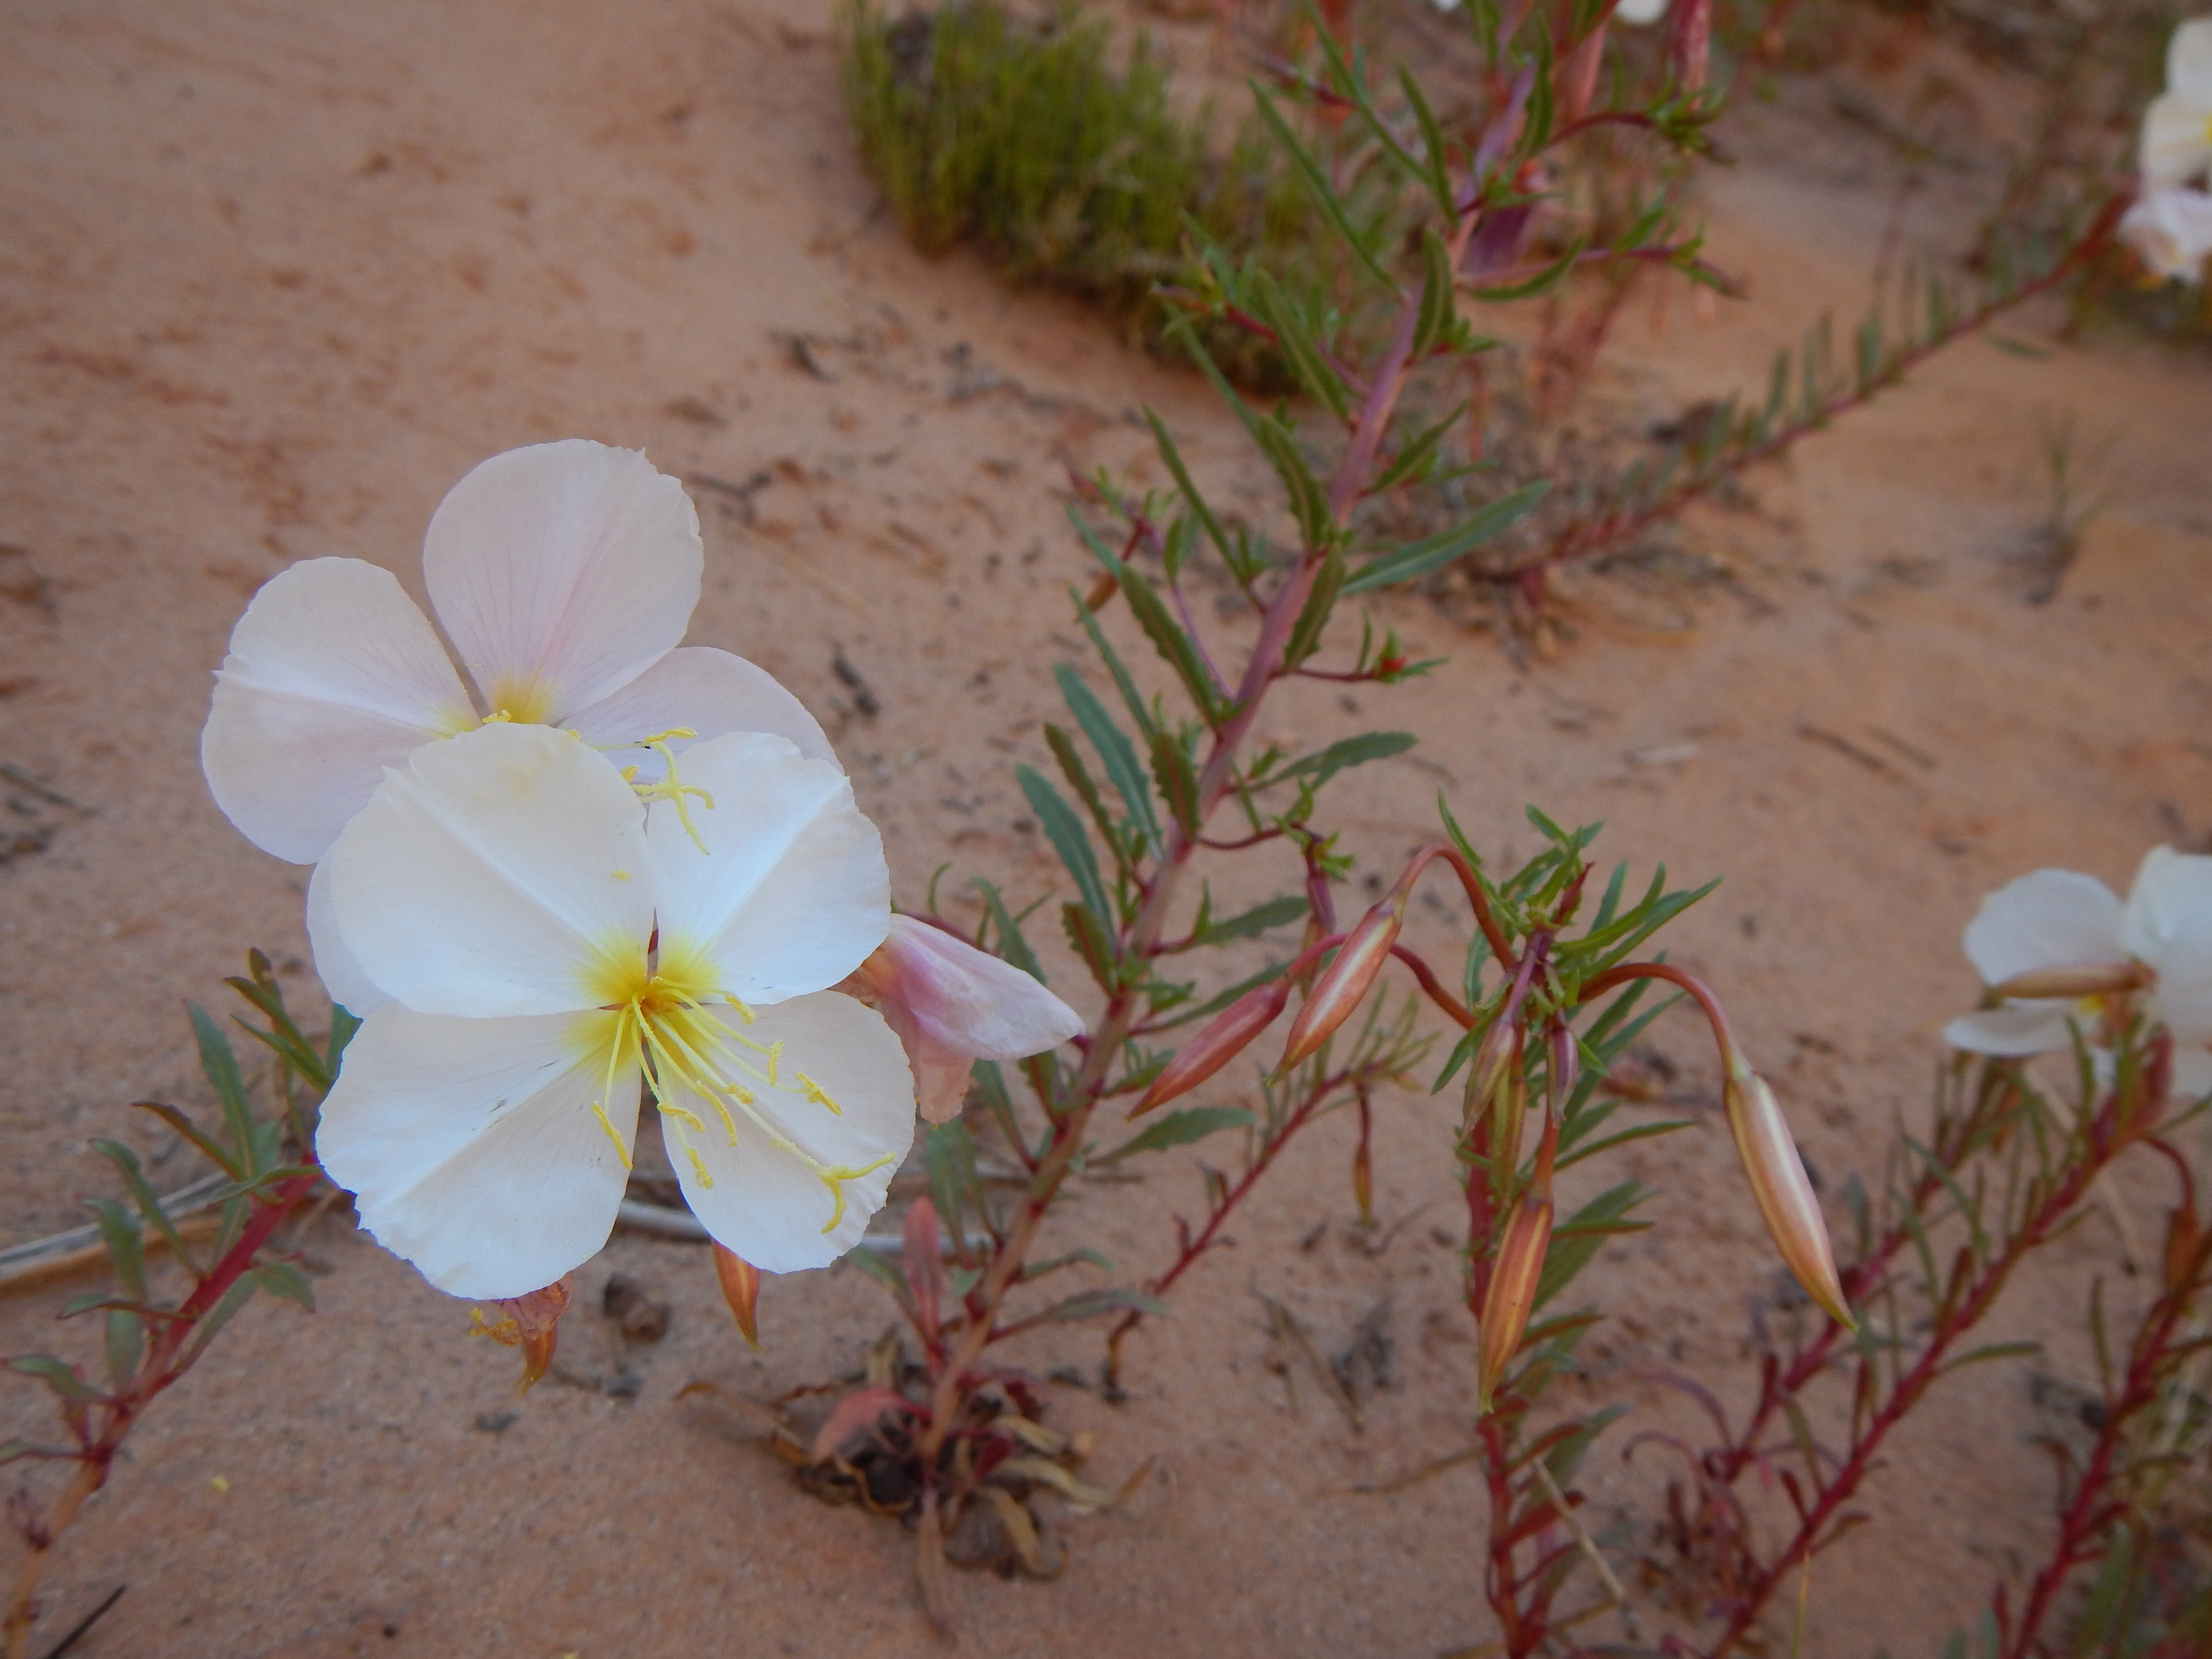 Photo: Lovely primrose flowers scattered about the sand...